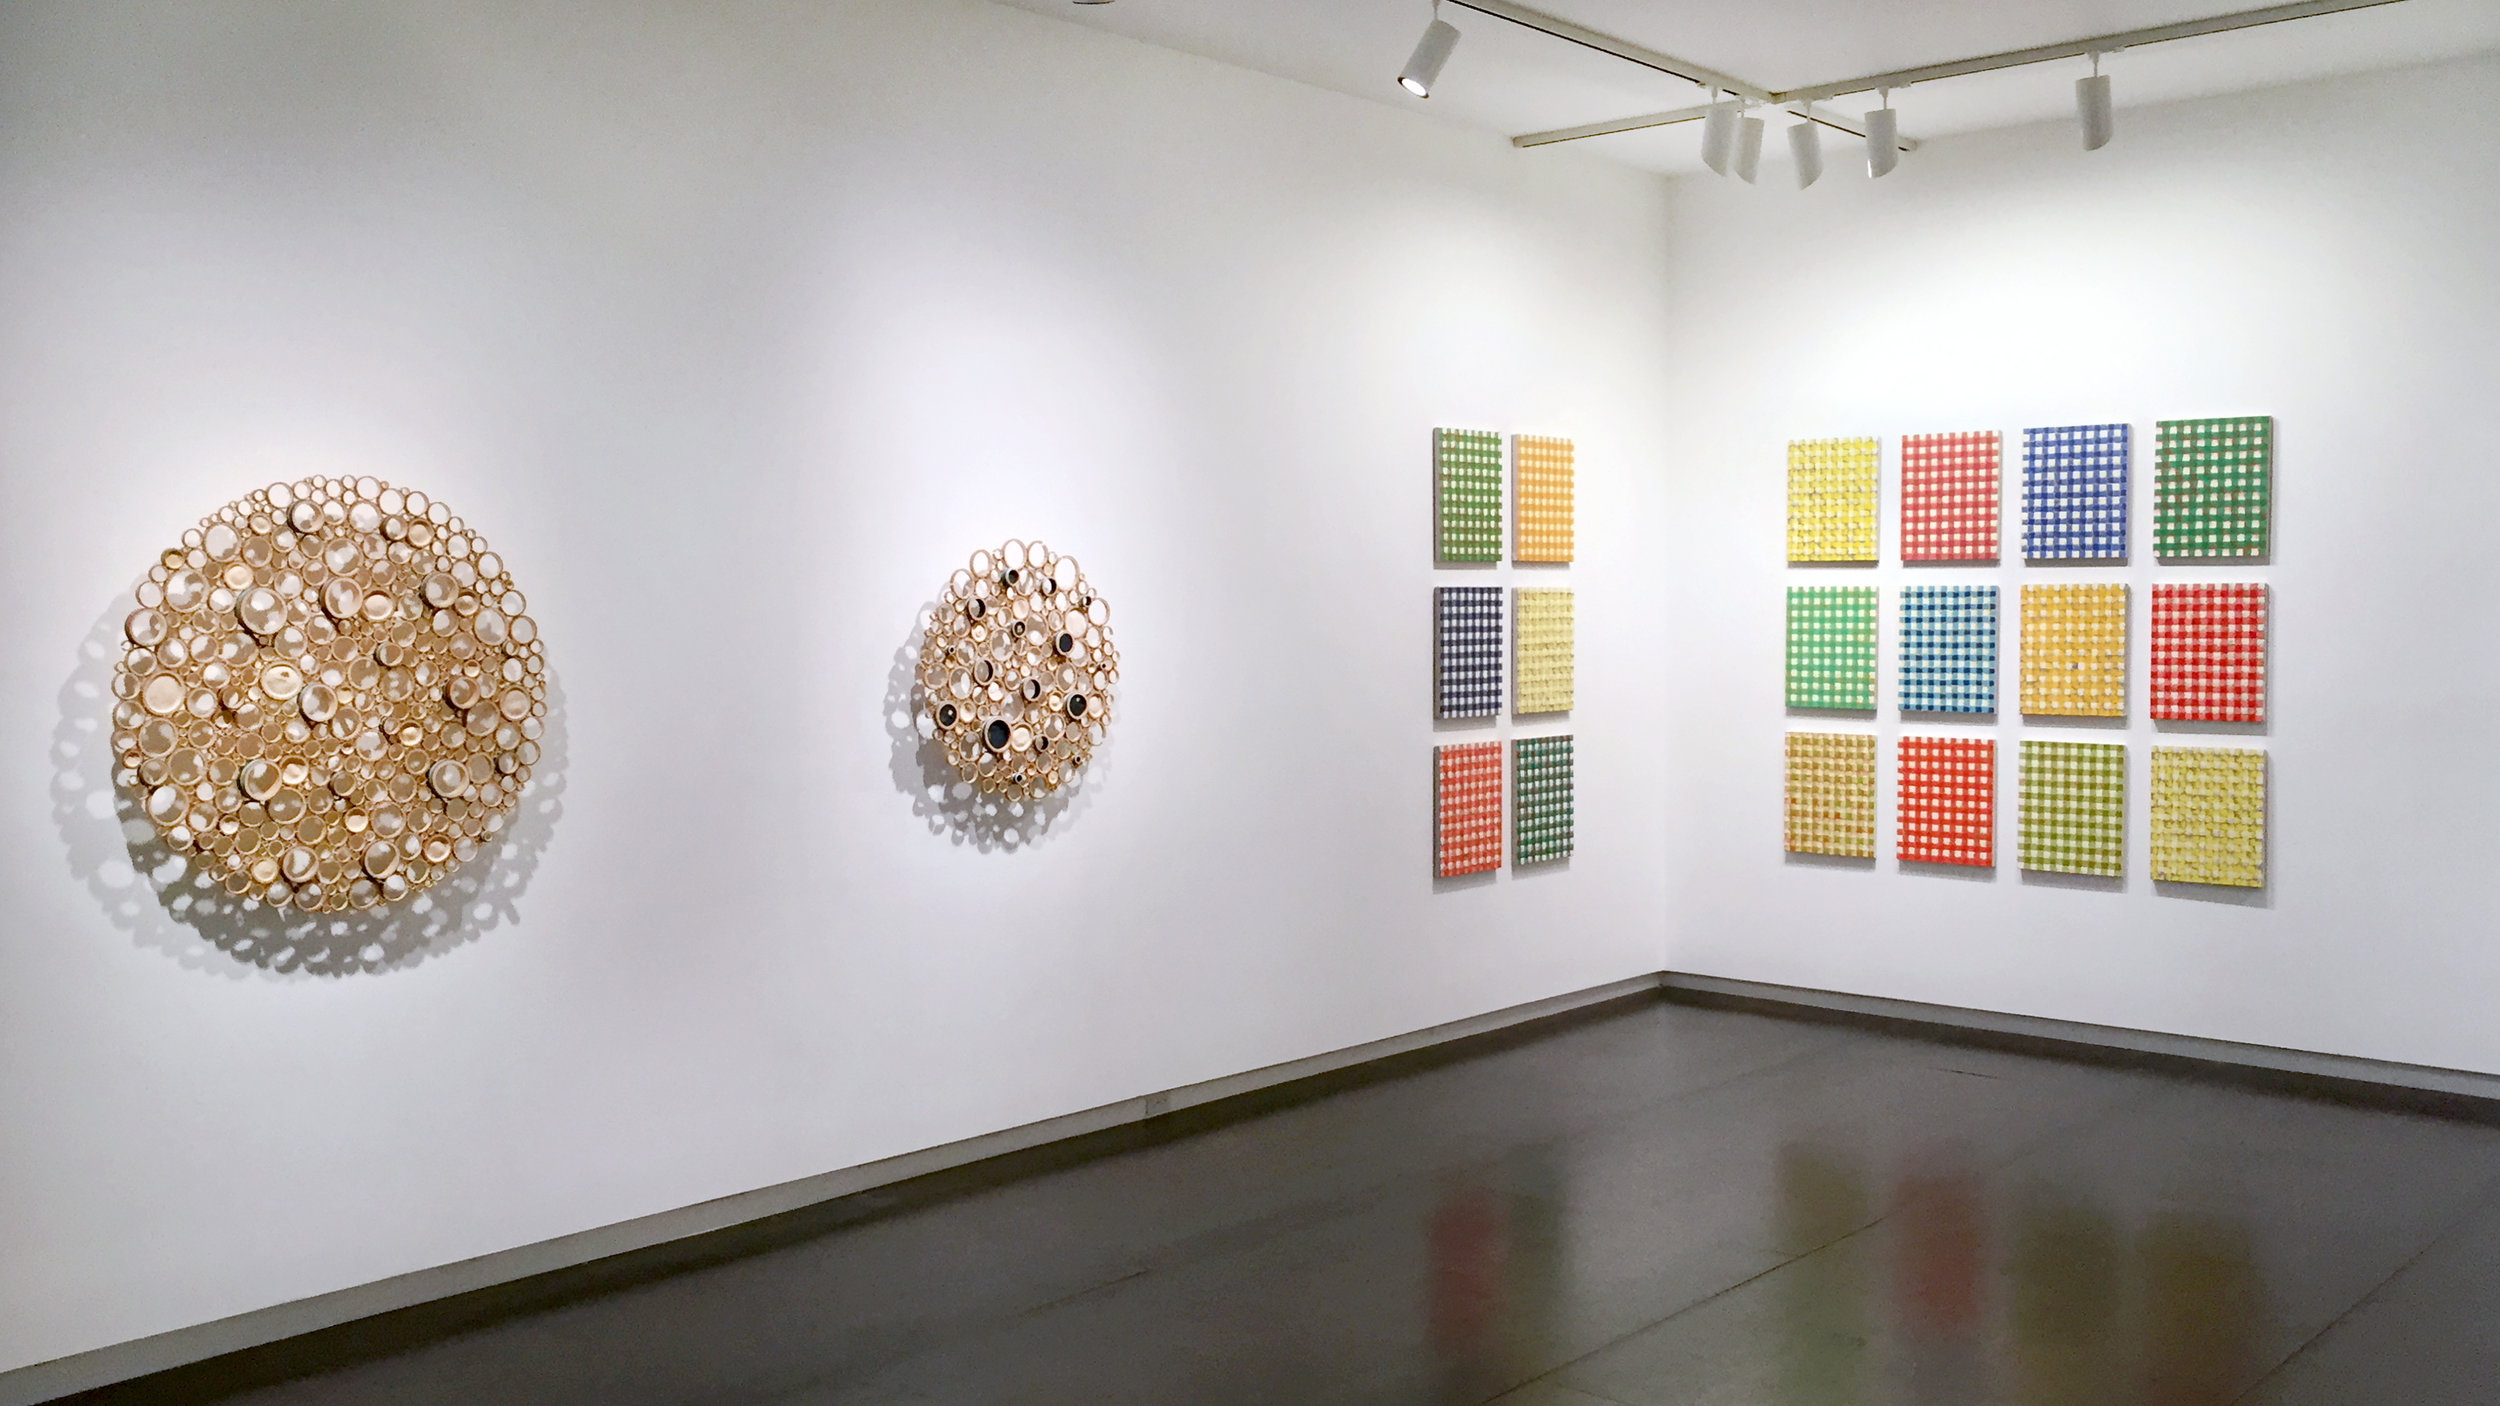 Bamboo wall-hanging works by Anne Crumpacker, gingham oil paintings by Michelle Grabner